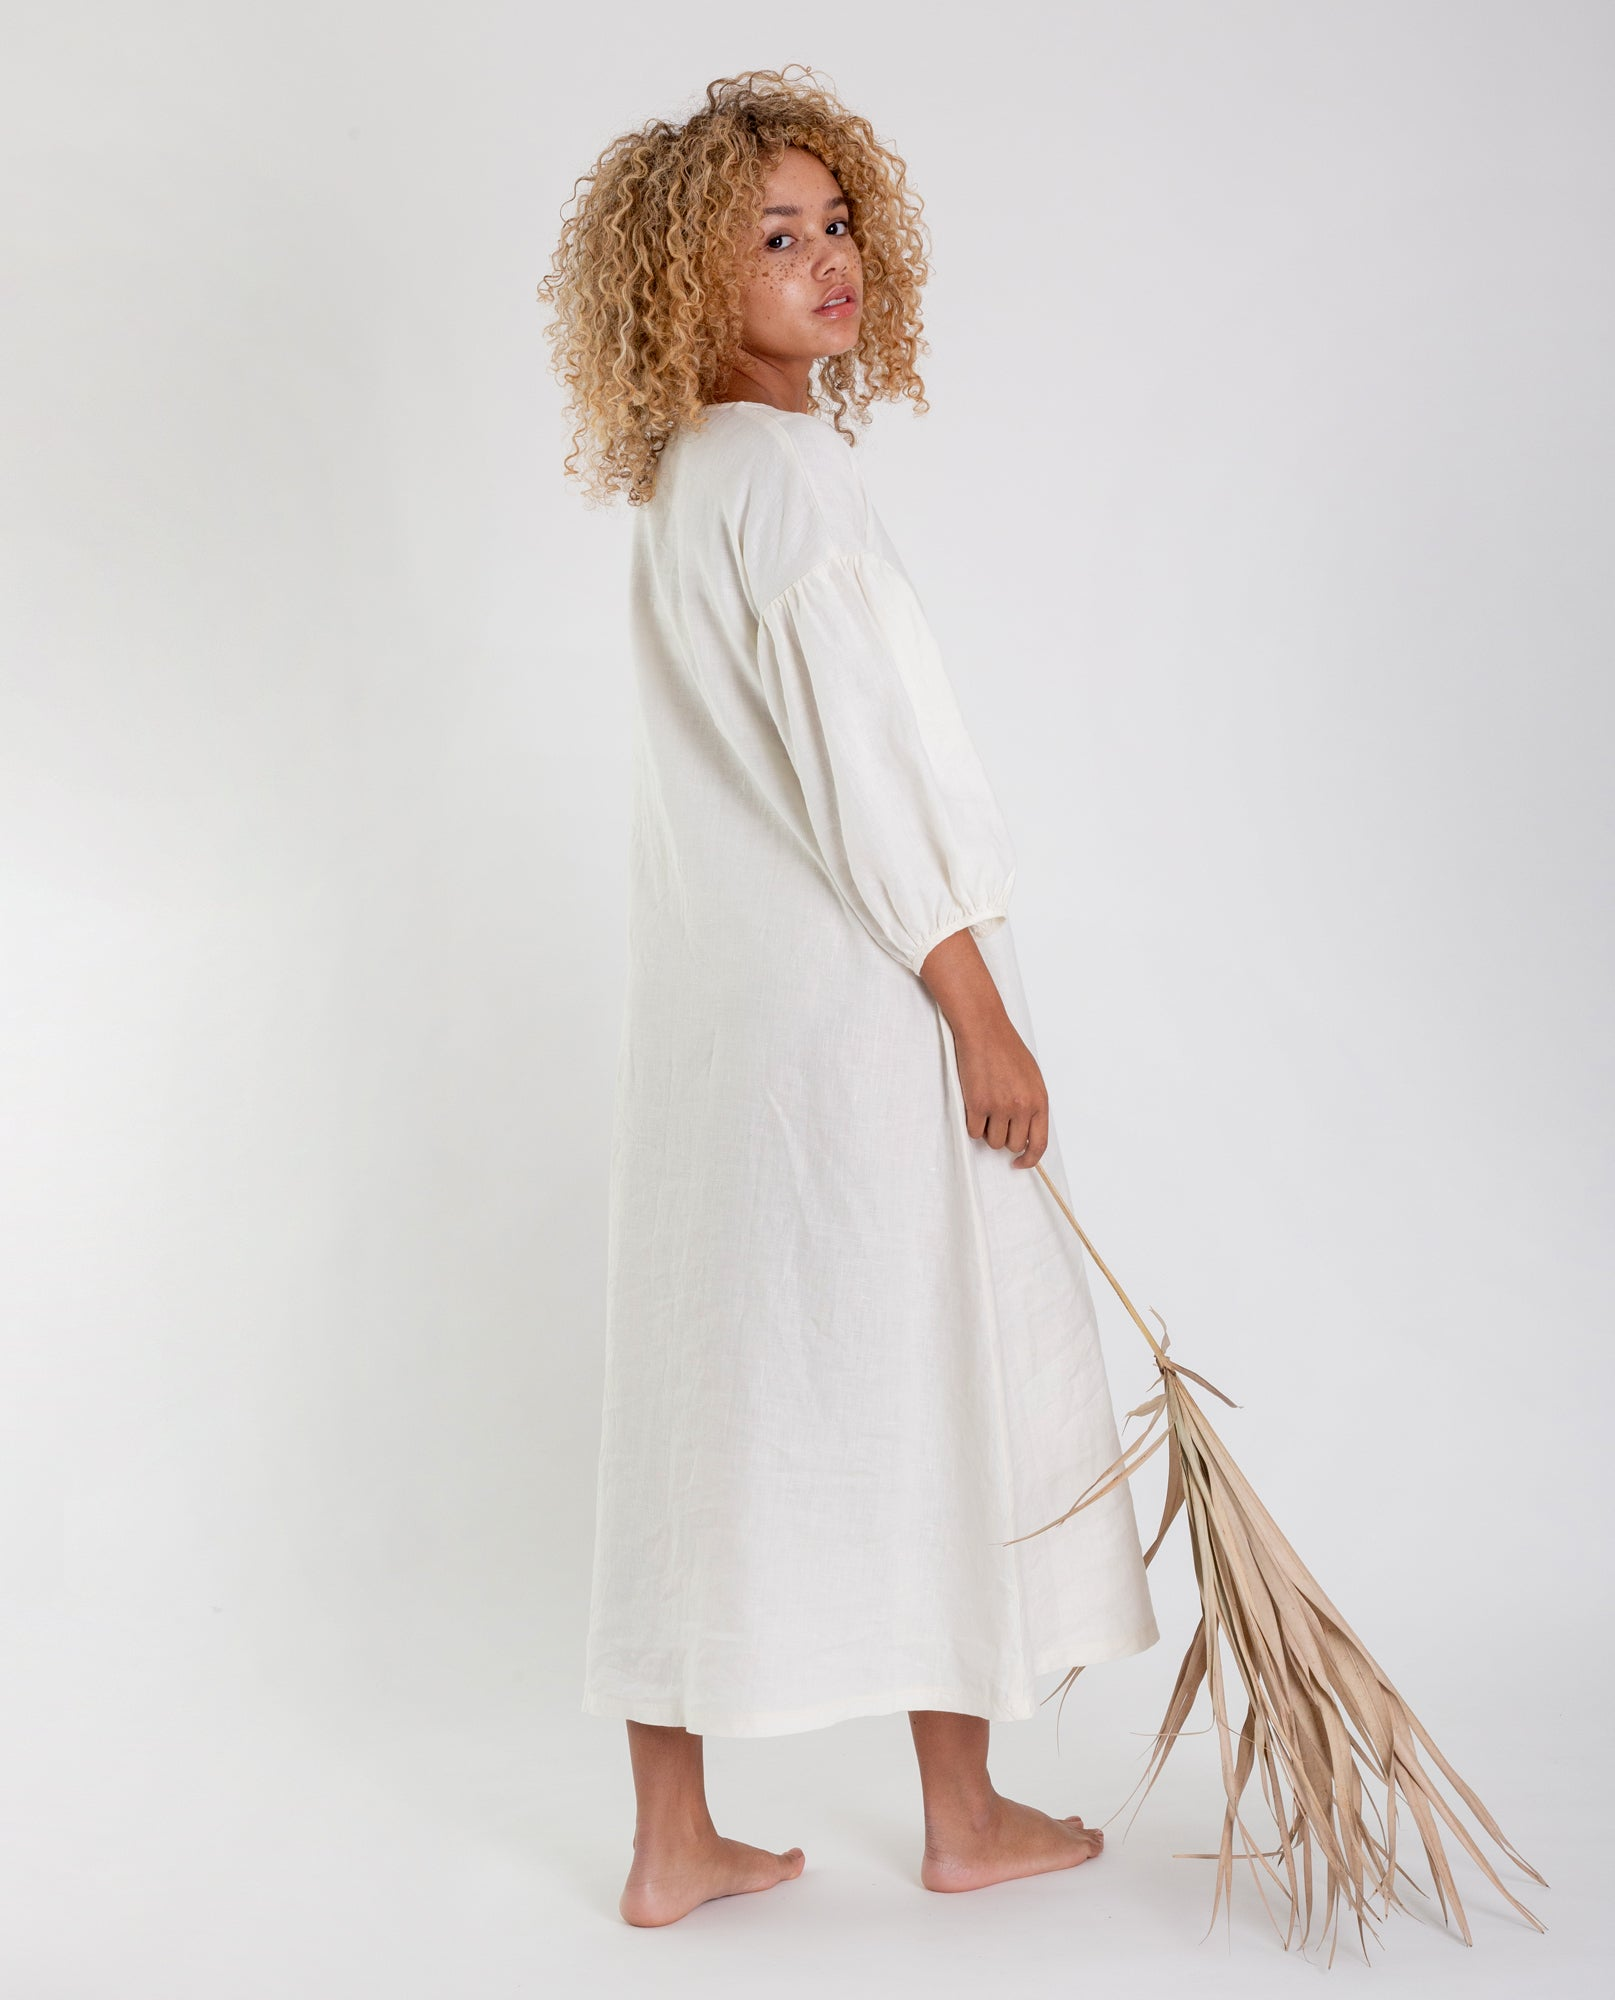 ANDREIA-MAY Linen Dress In Ivory